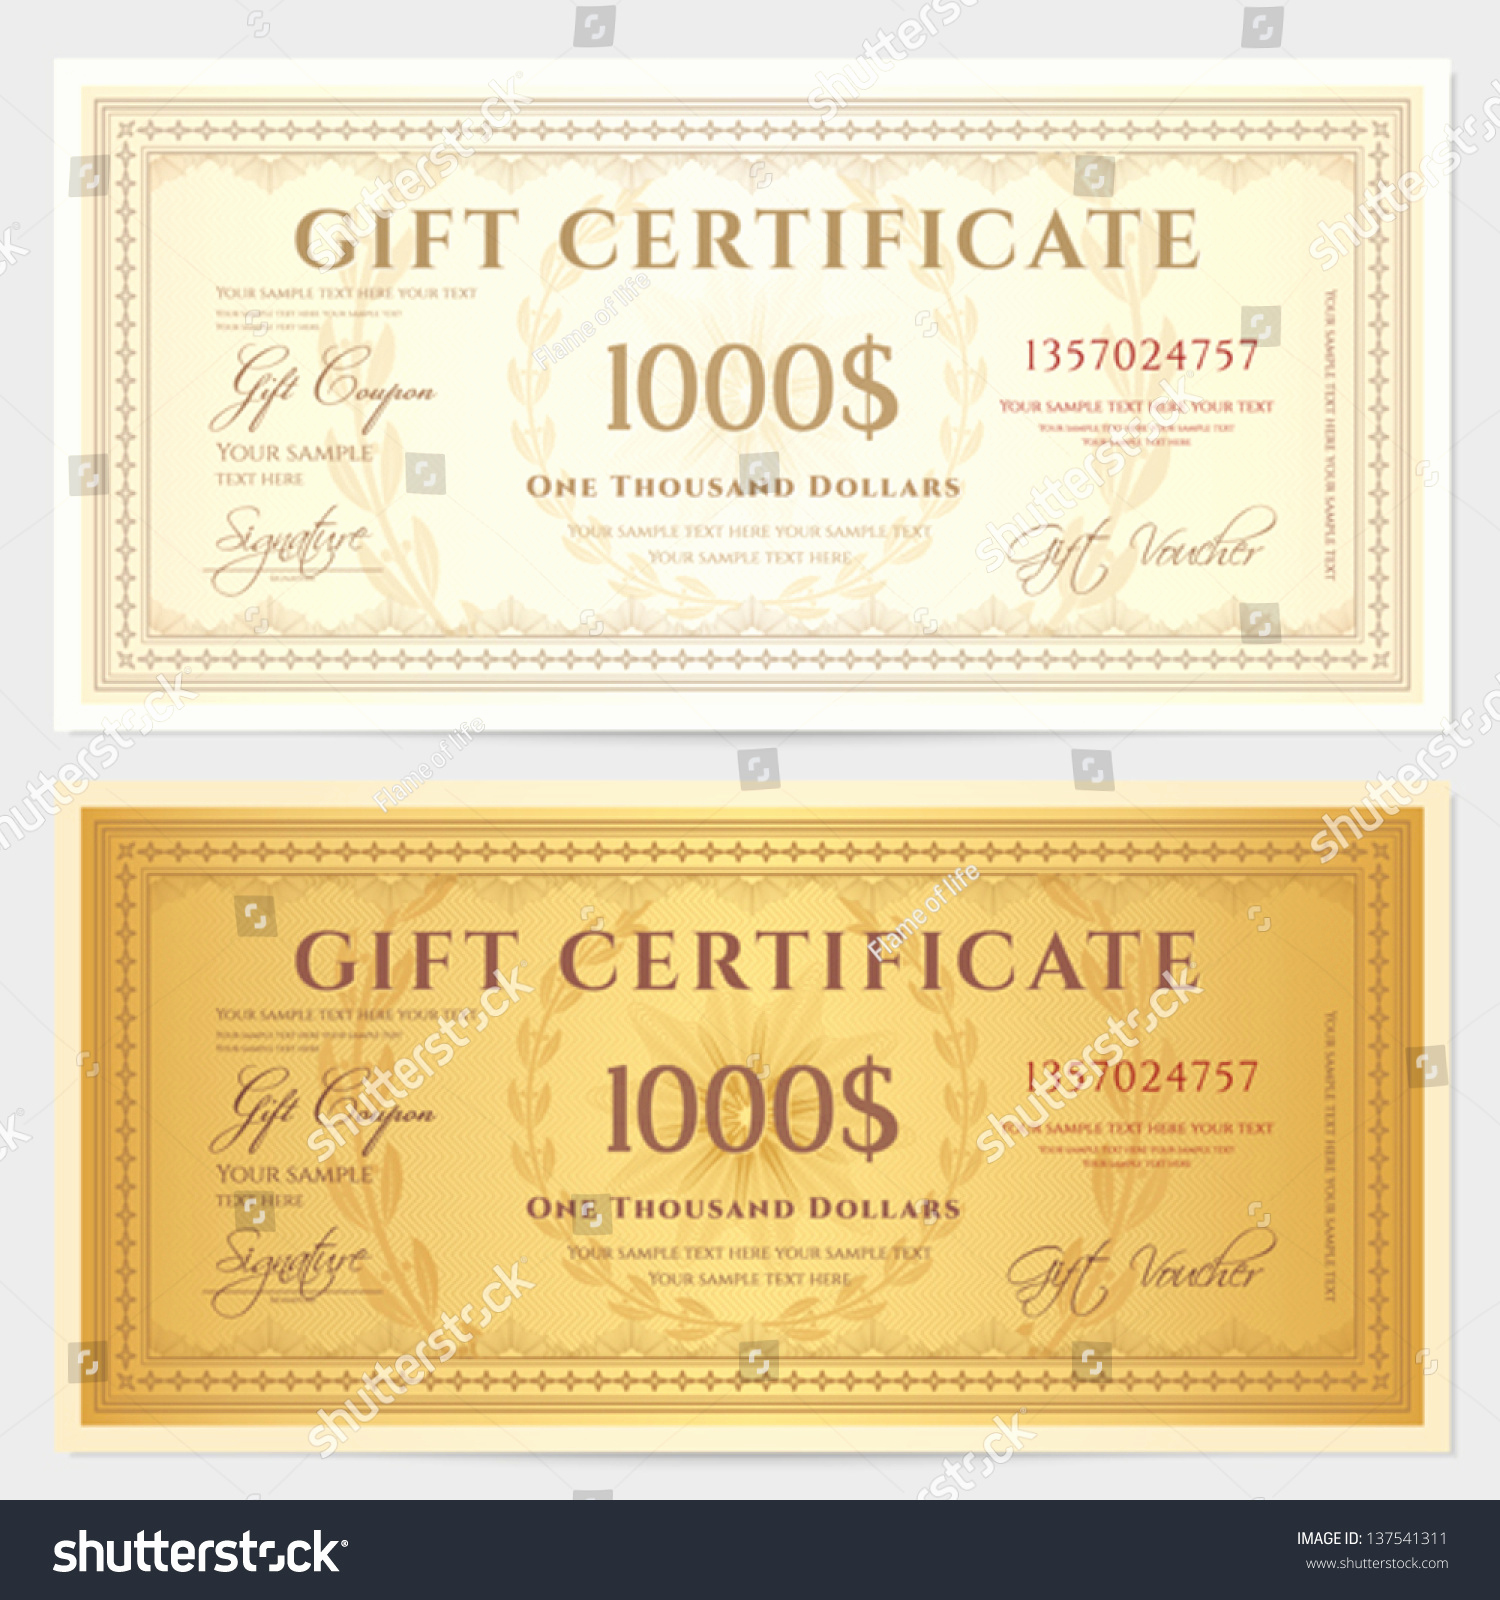 Money Gift Certificate Template New Gift Certificate Voucher Template with Guilloche Pattern